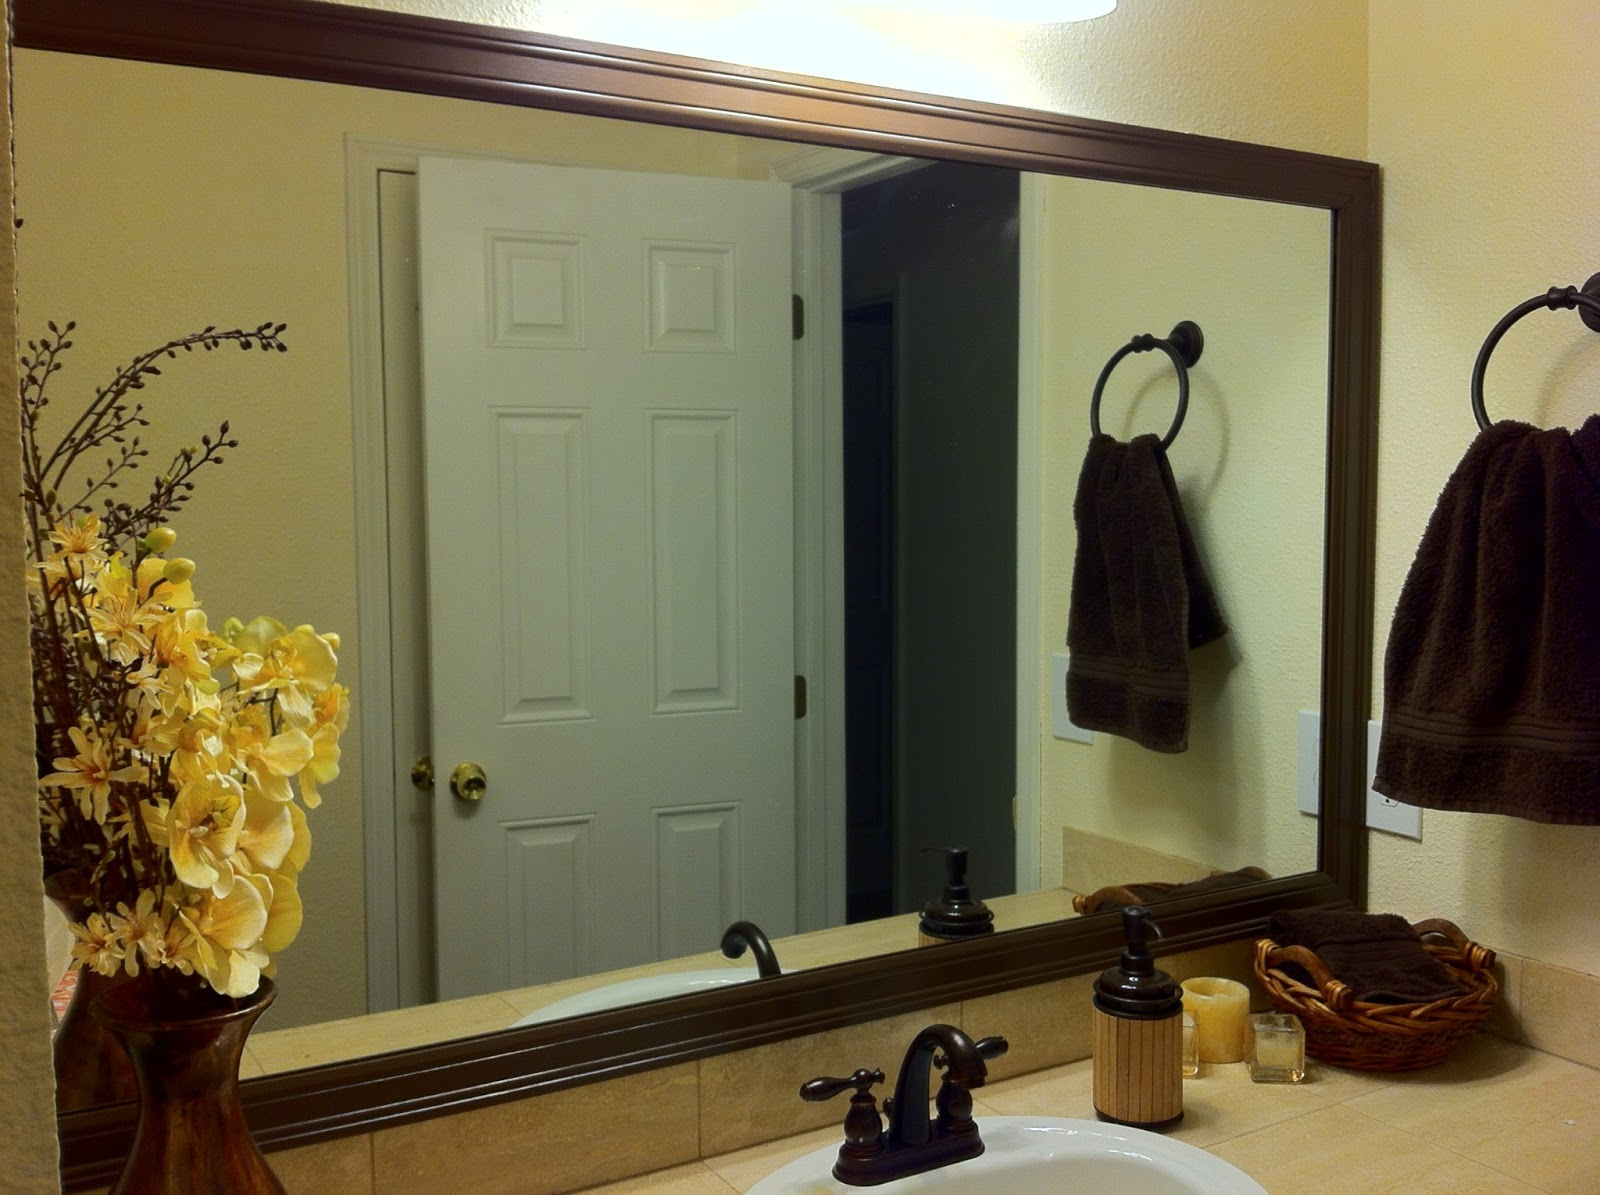 Miscellanea Etcetera: DIY Bathroom Mirror Frame For Less